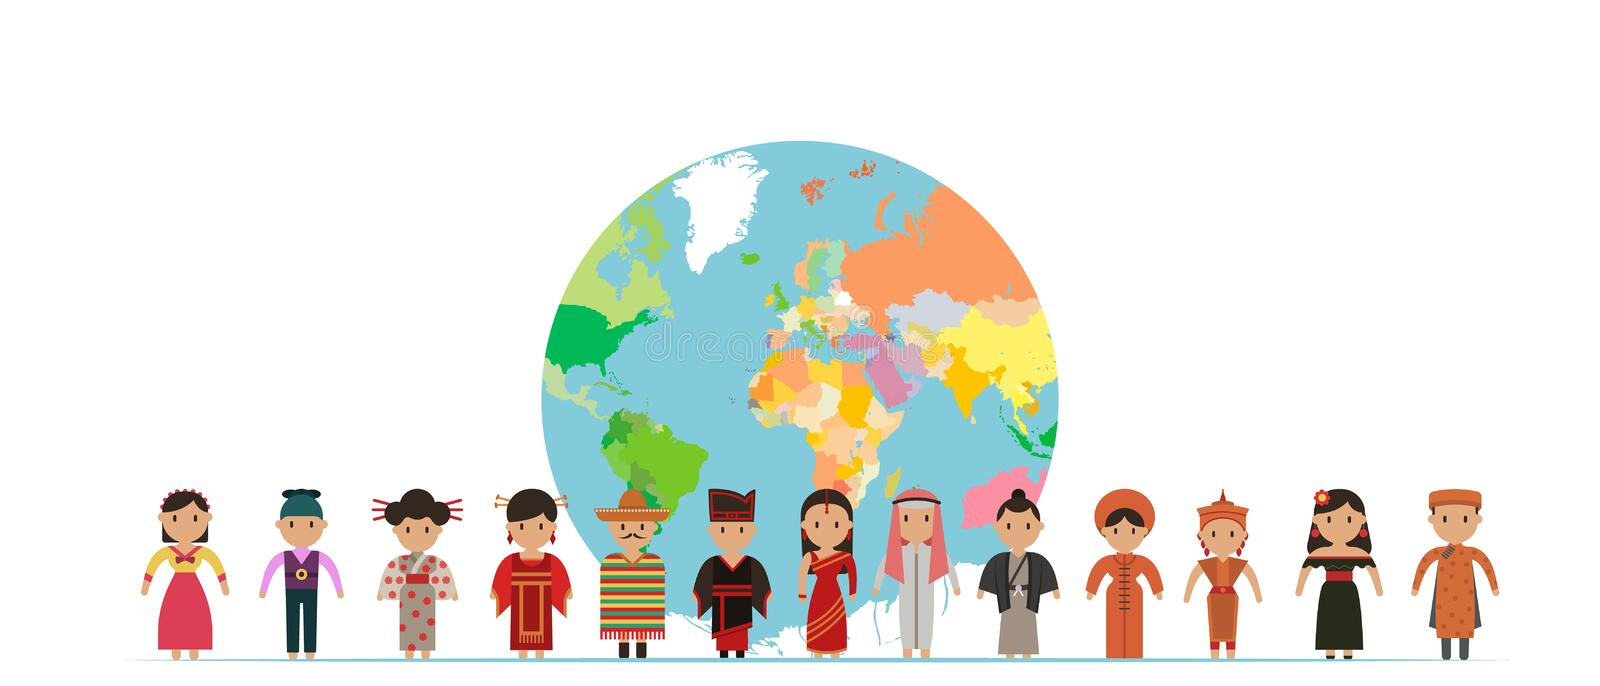 World kids. International friendship day! Vector illustration of diverse Children Holding Hands around the planet. On white background stock illustration